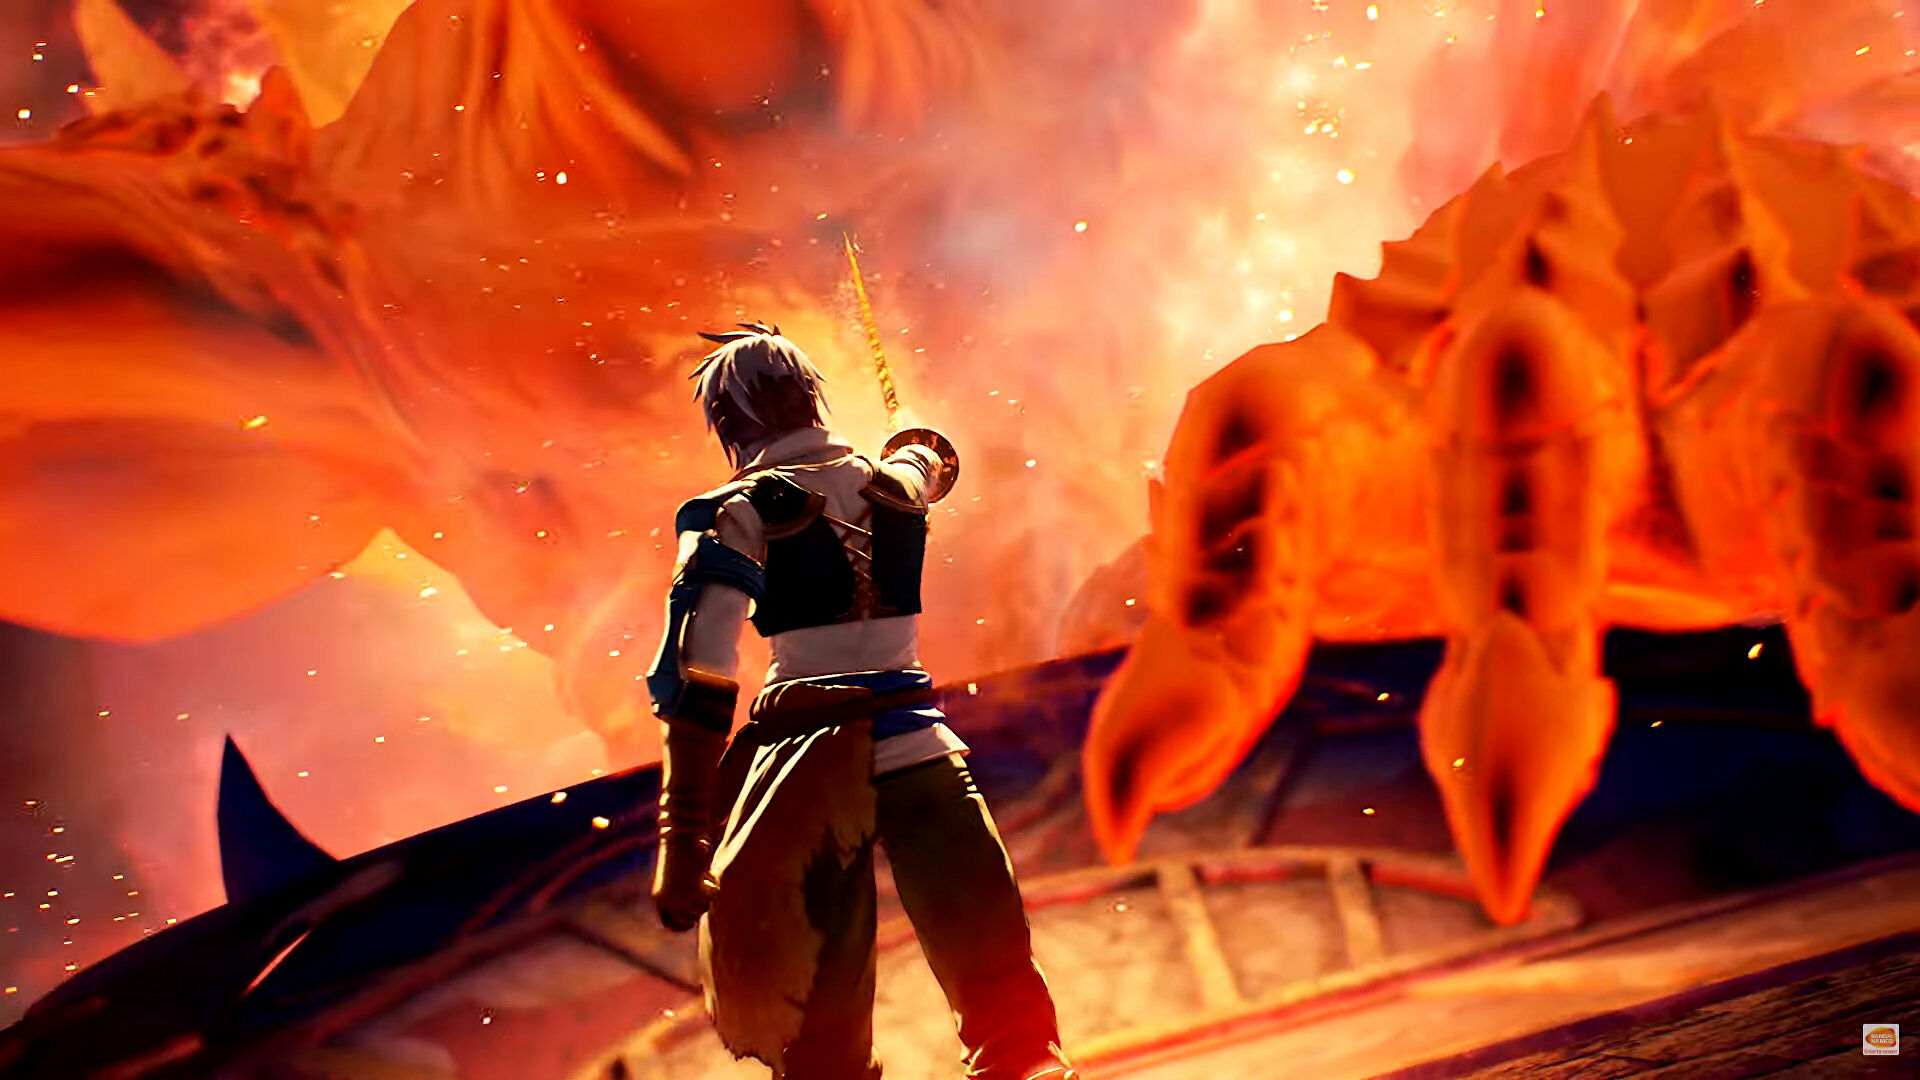 Tales Of Arise resurfaces with a new trailer after a long delay